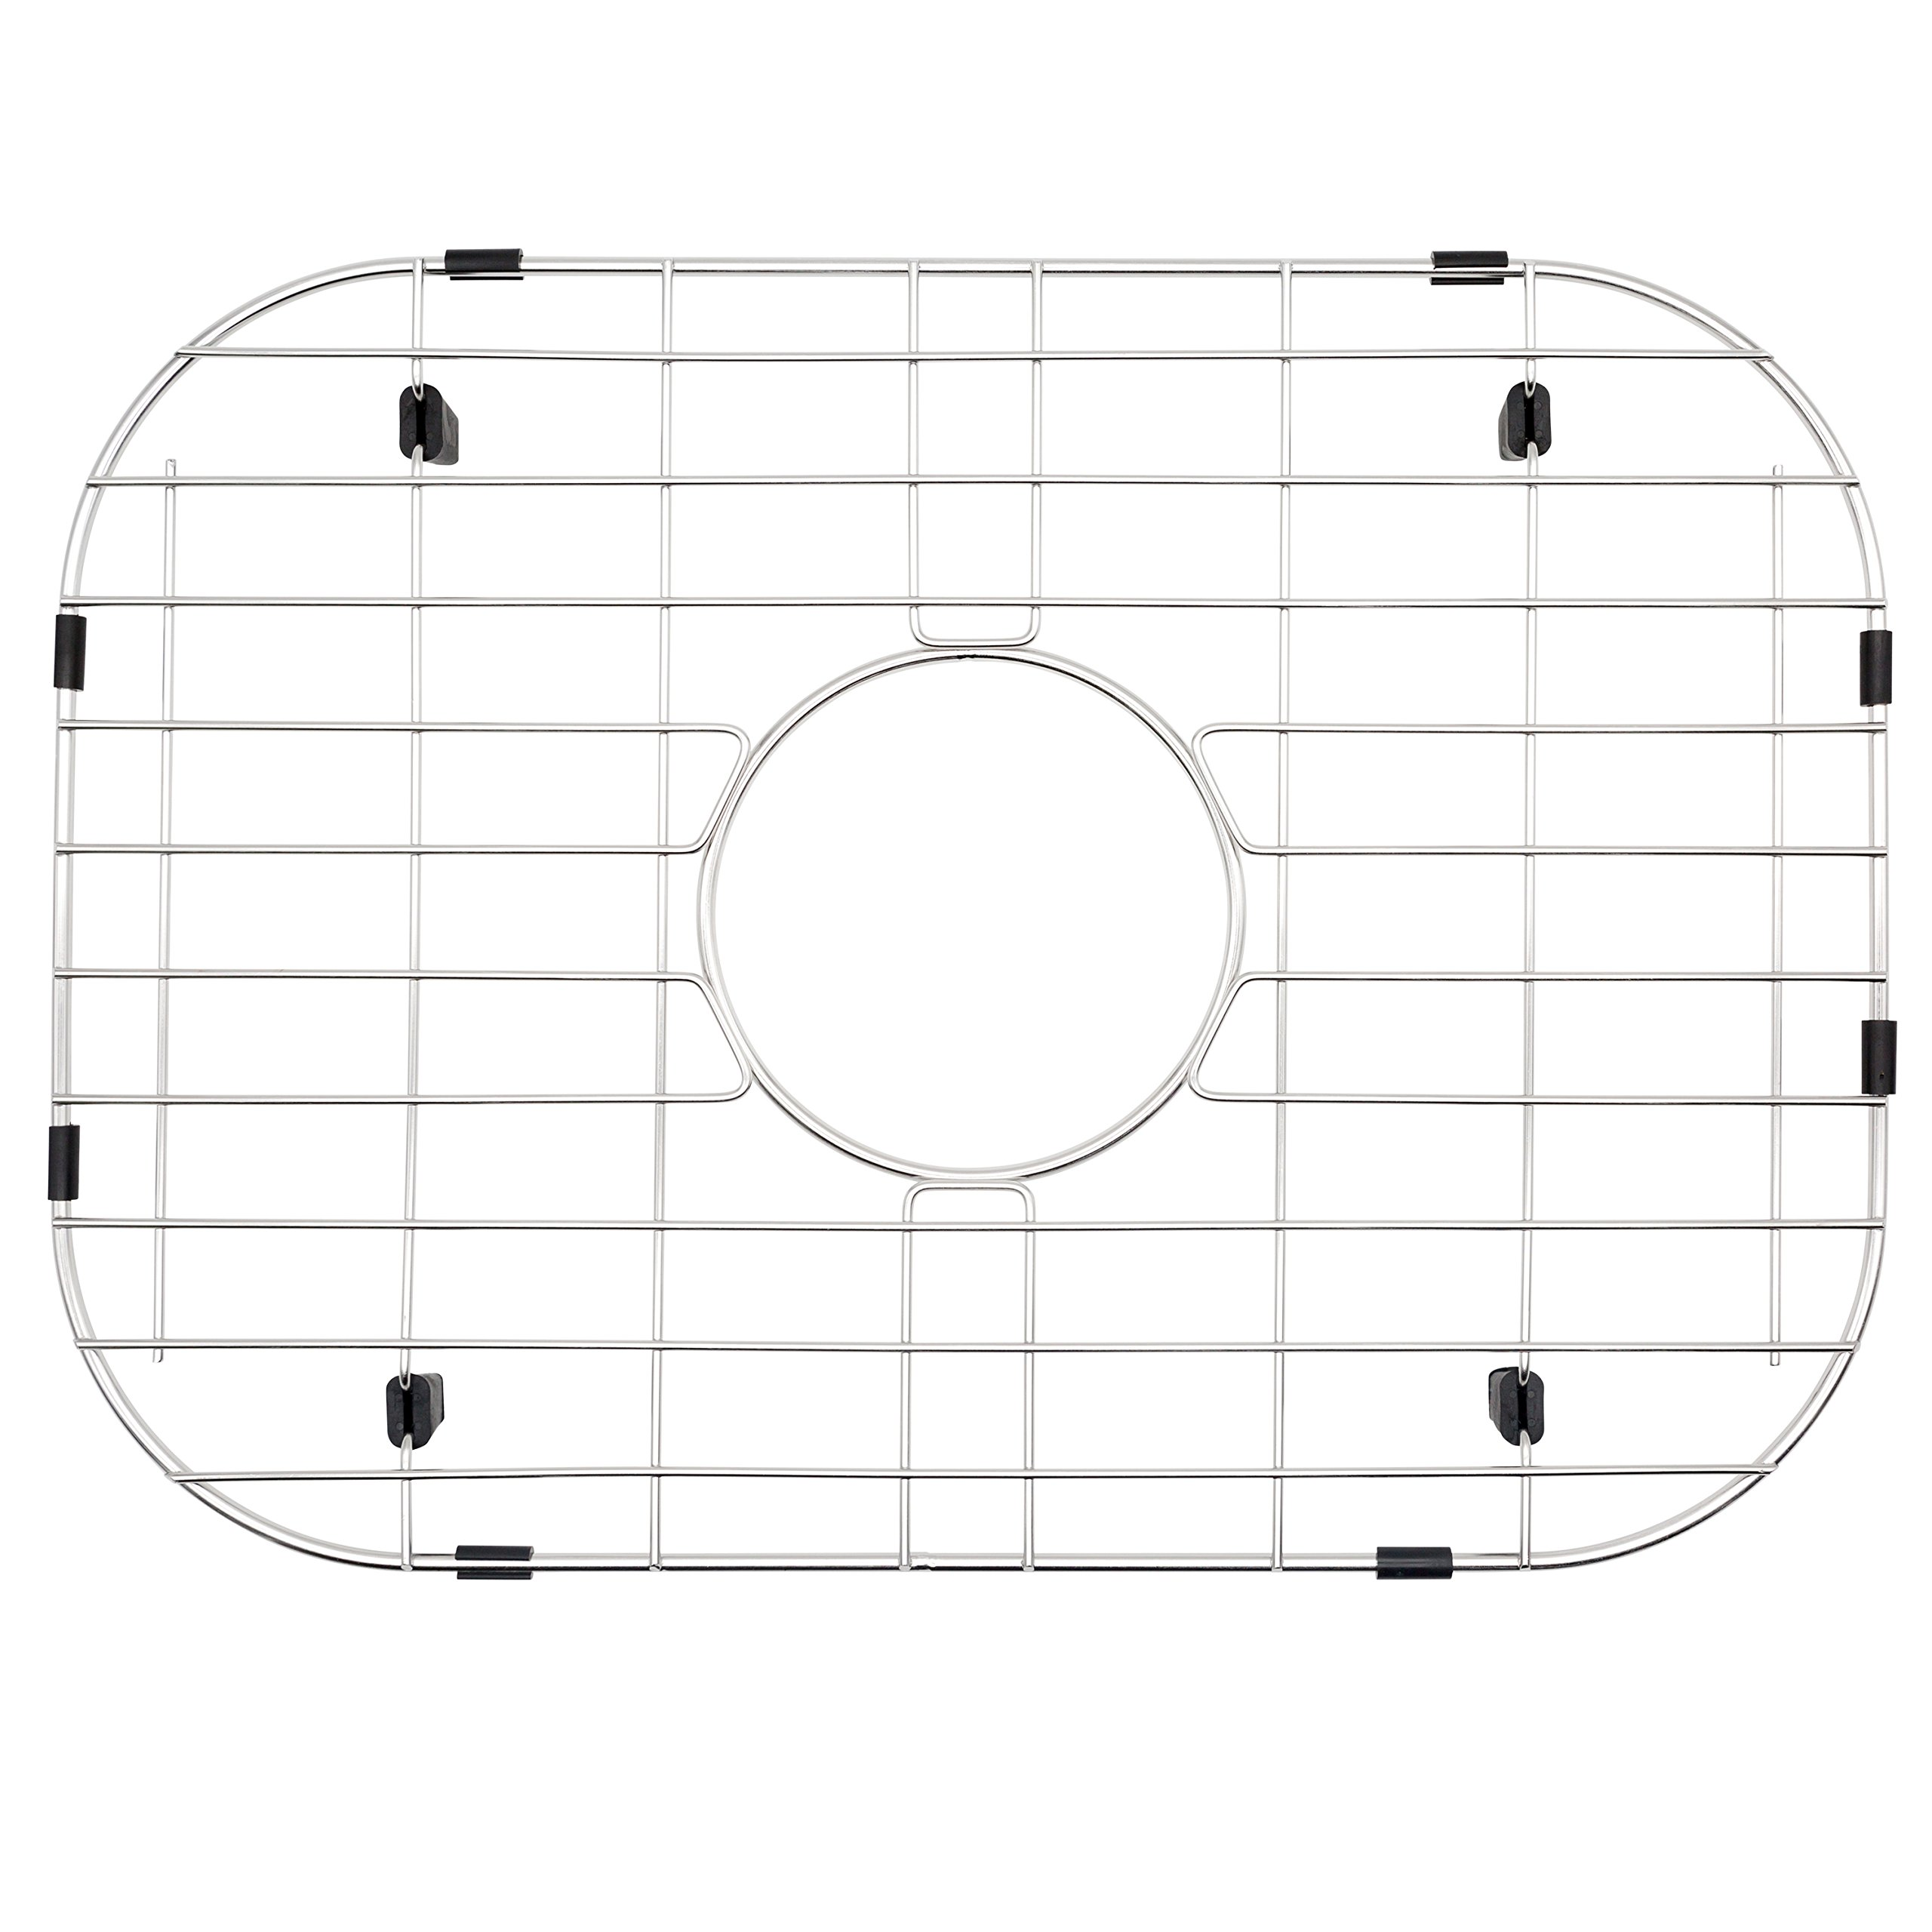 NWC Sink Protector, Metal Grid for Stainless Steel Kitchen Sinks | 11 in X 15 in | Best for Protecting Your Sink by NWC